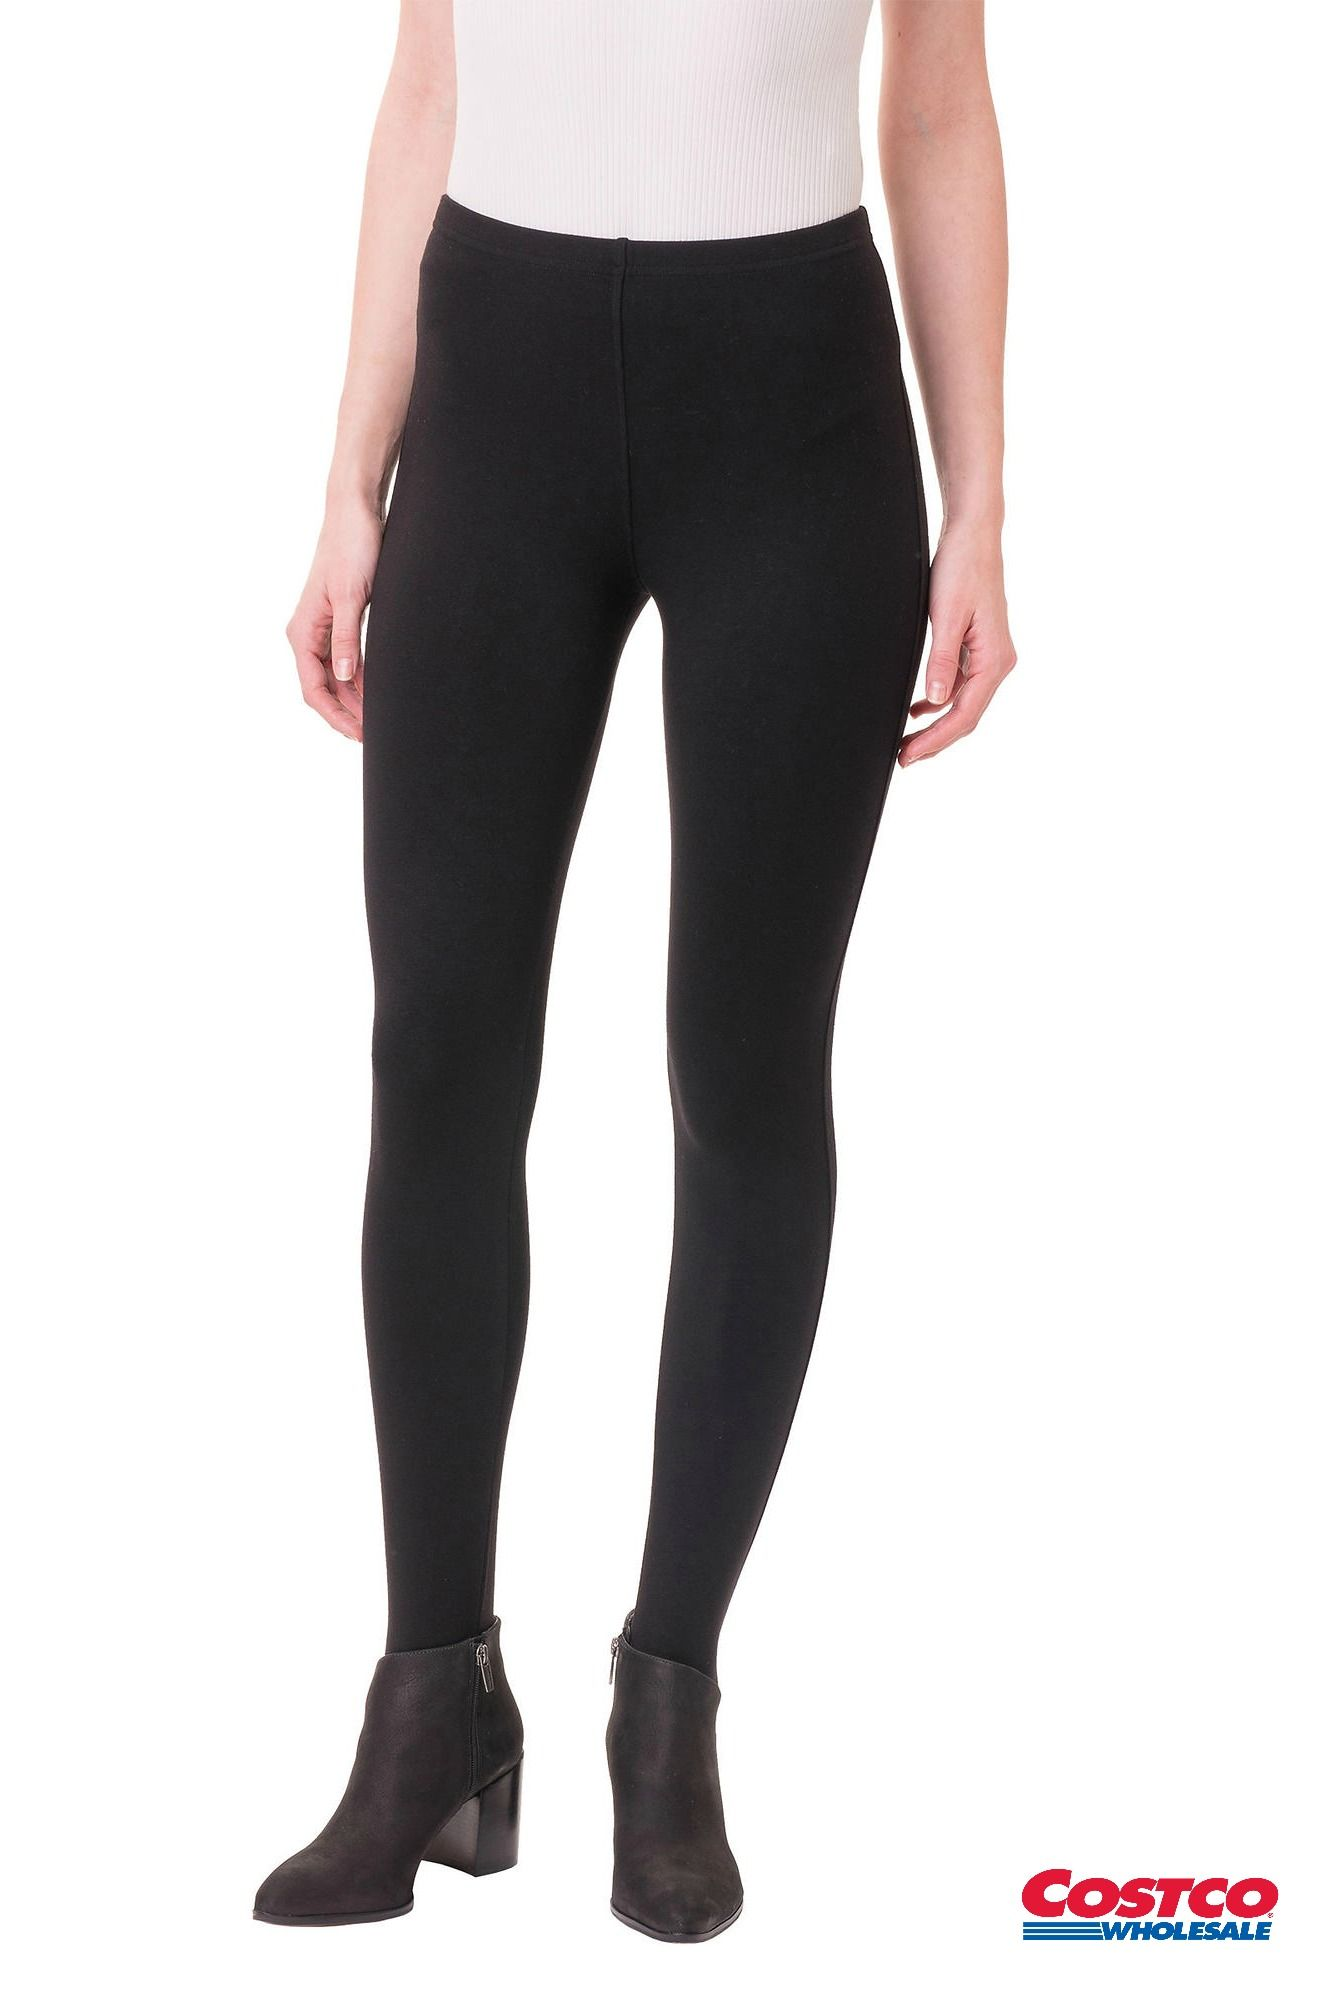 84a283af16b Kirkland Signature Ladies' Legging | Top Pinned | Costco, Black ...